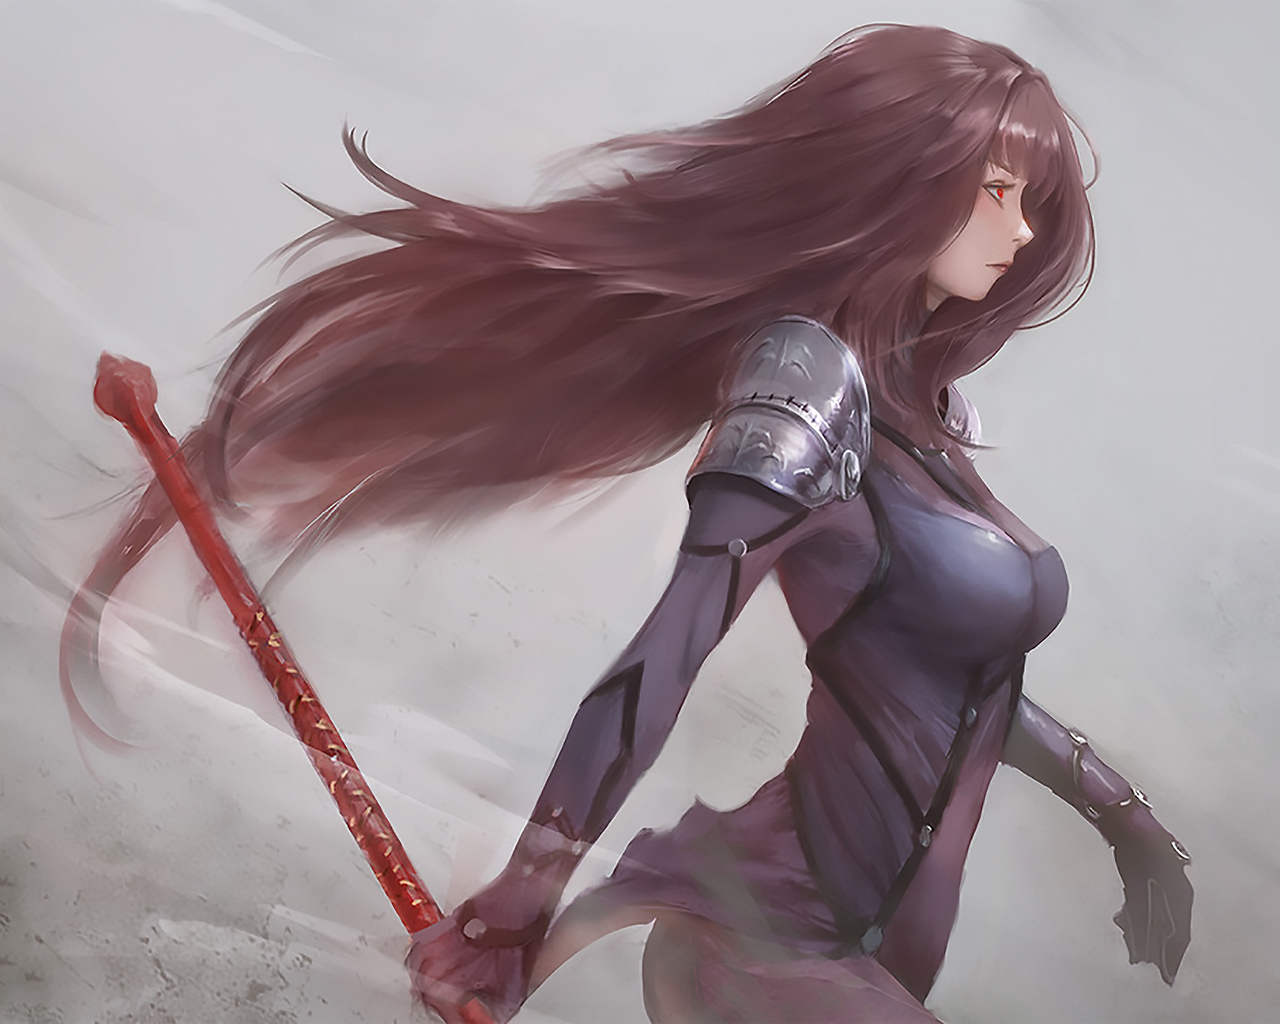 1280x1024 Scathach Fate Grand Order Artwork 1280x1024 Resolution Hd 4k Wallpapers Images Backgrounds Photos And Pictures